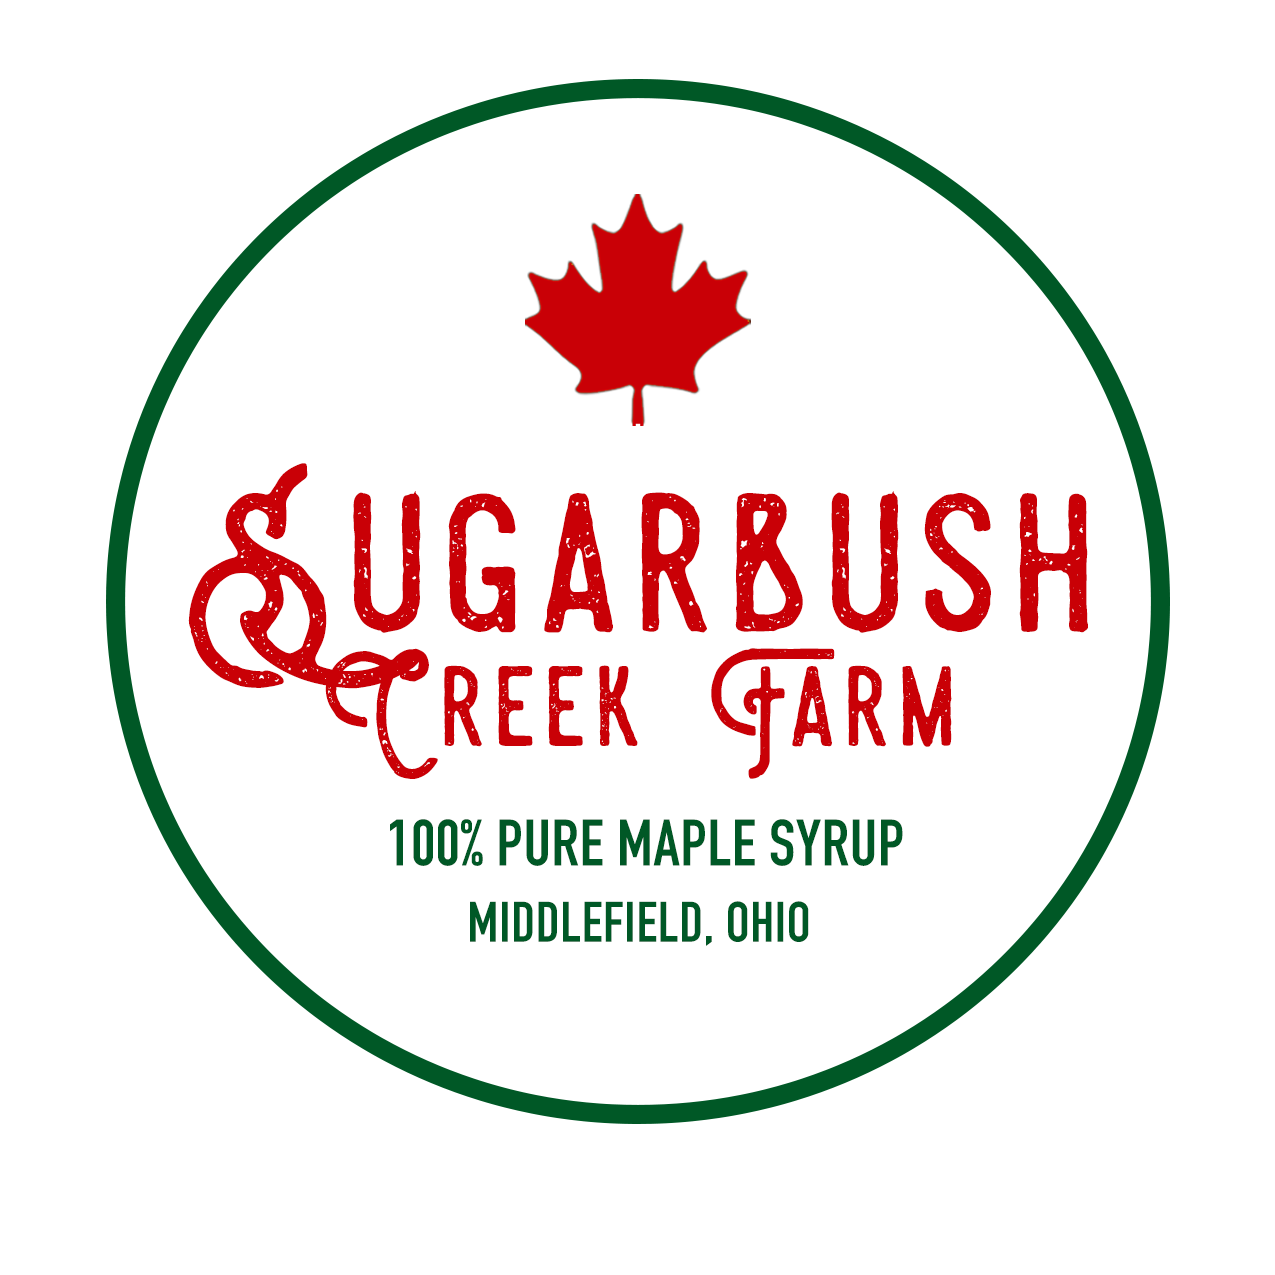 Sugarbush Creek Farm